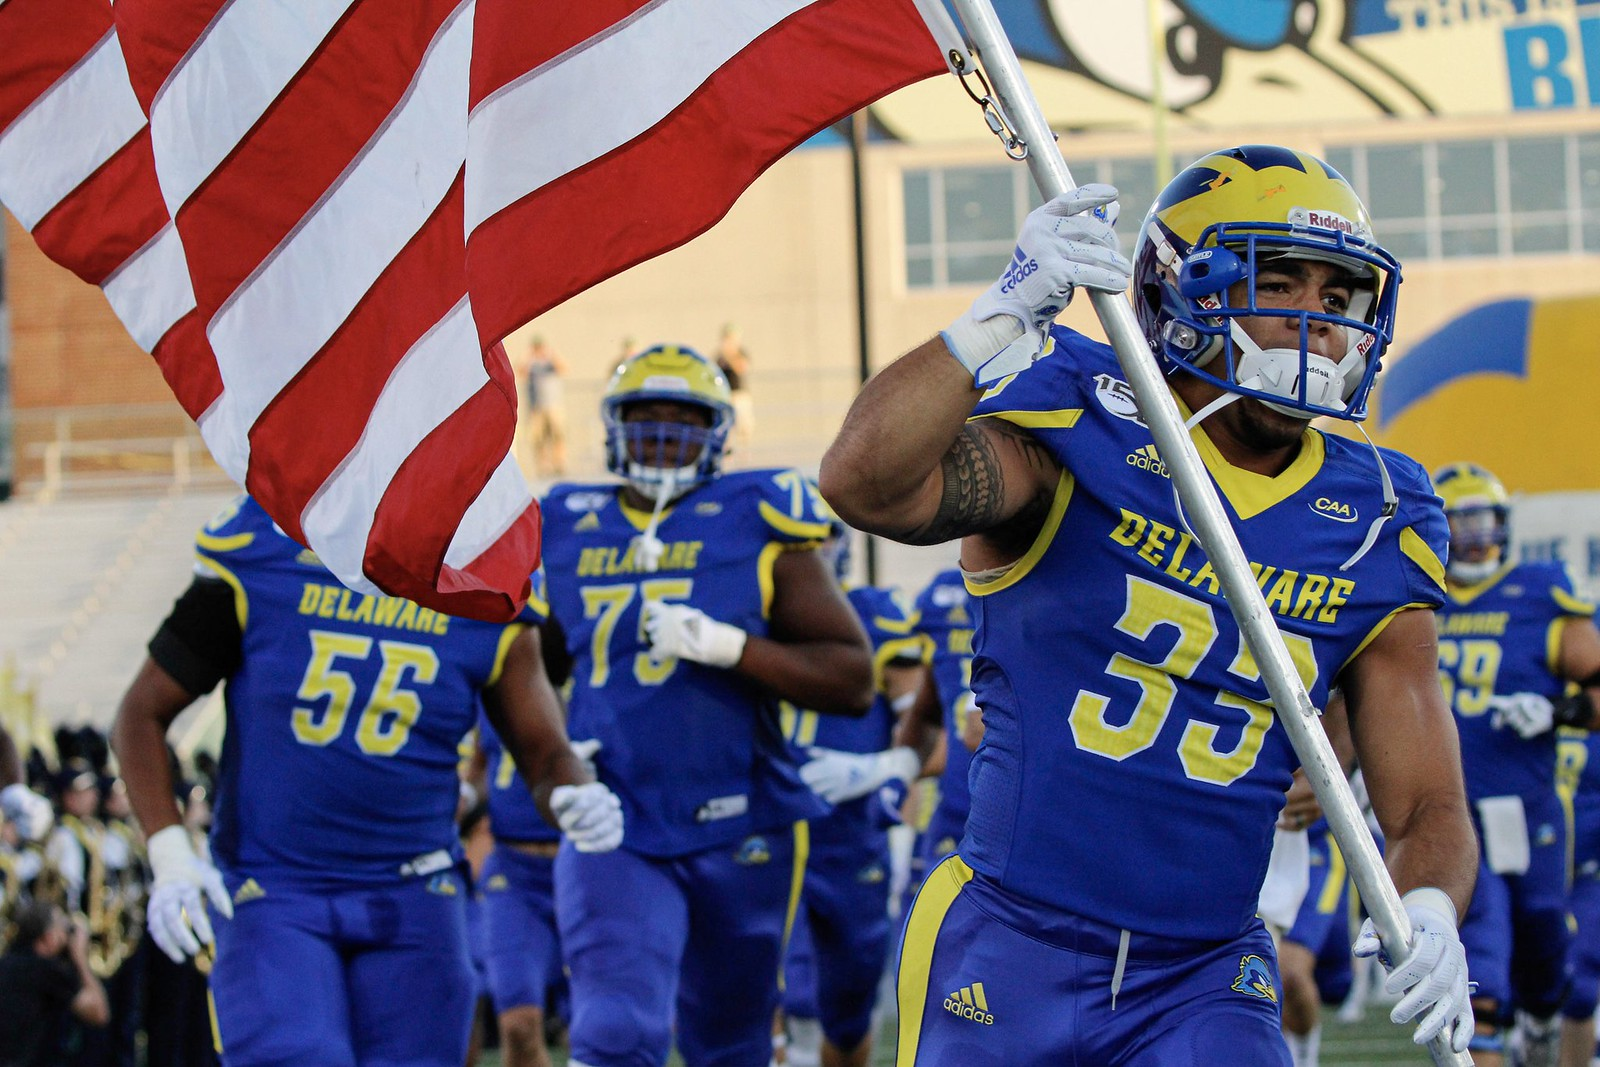 Saturday Night Lights: Blue Hens take home the win in 3OT battle against Rhode Island